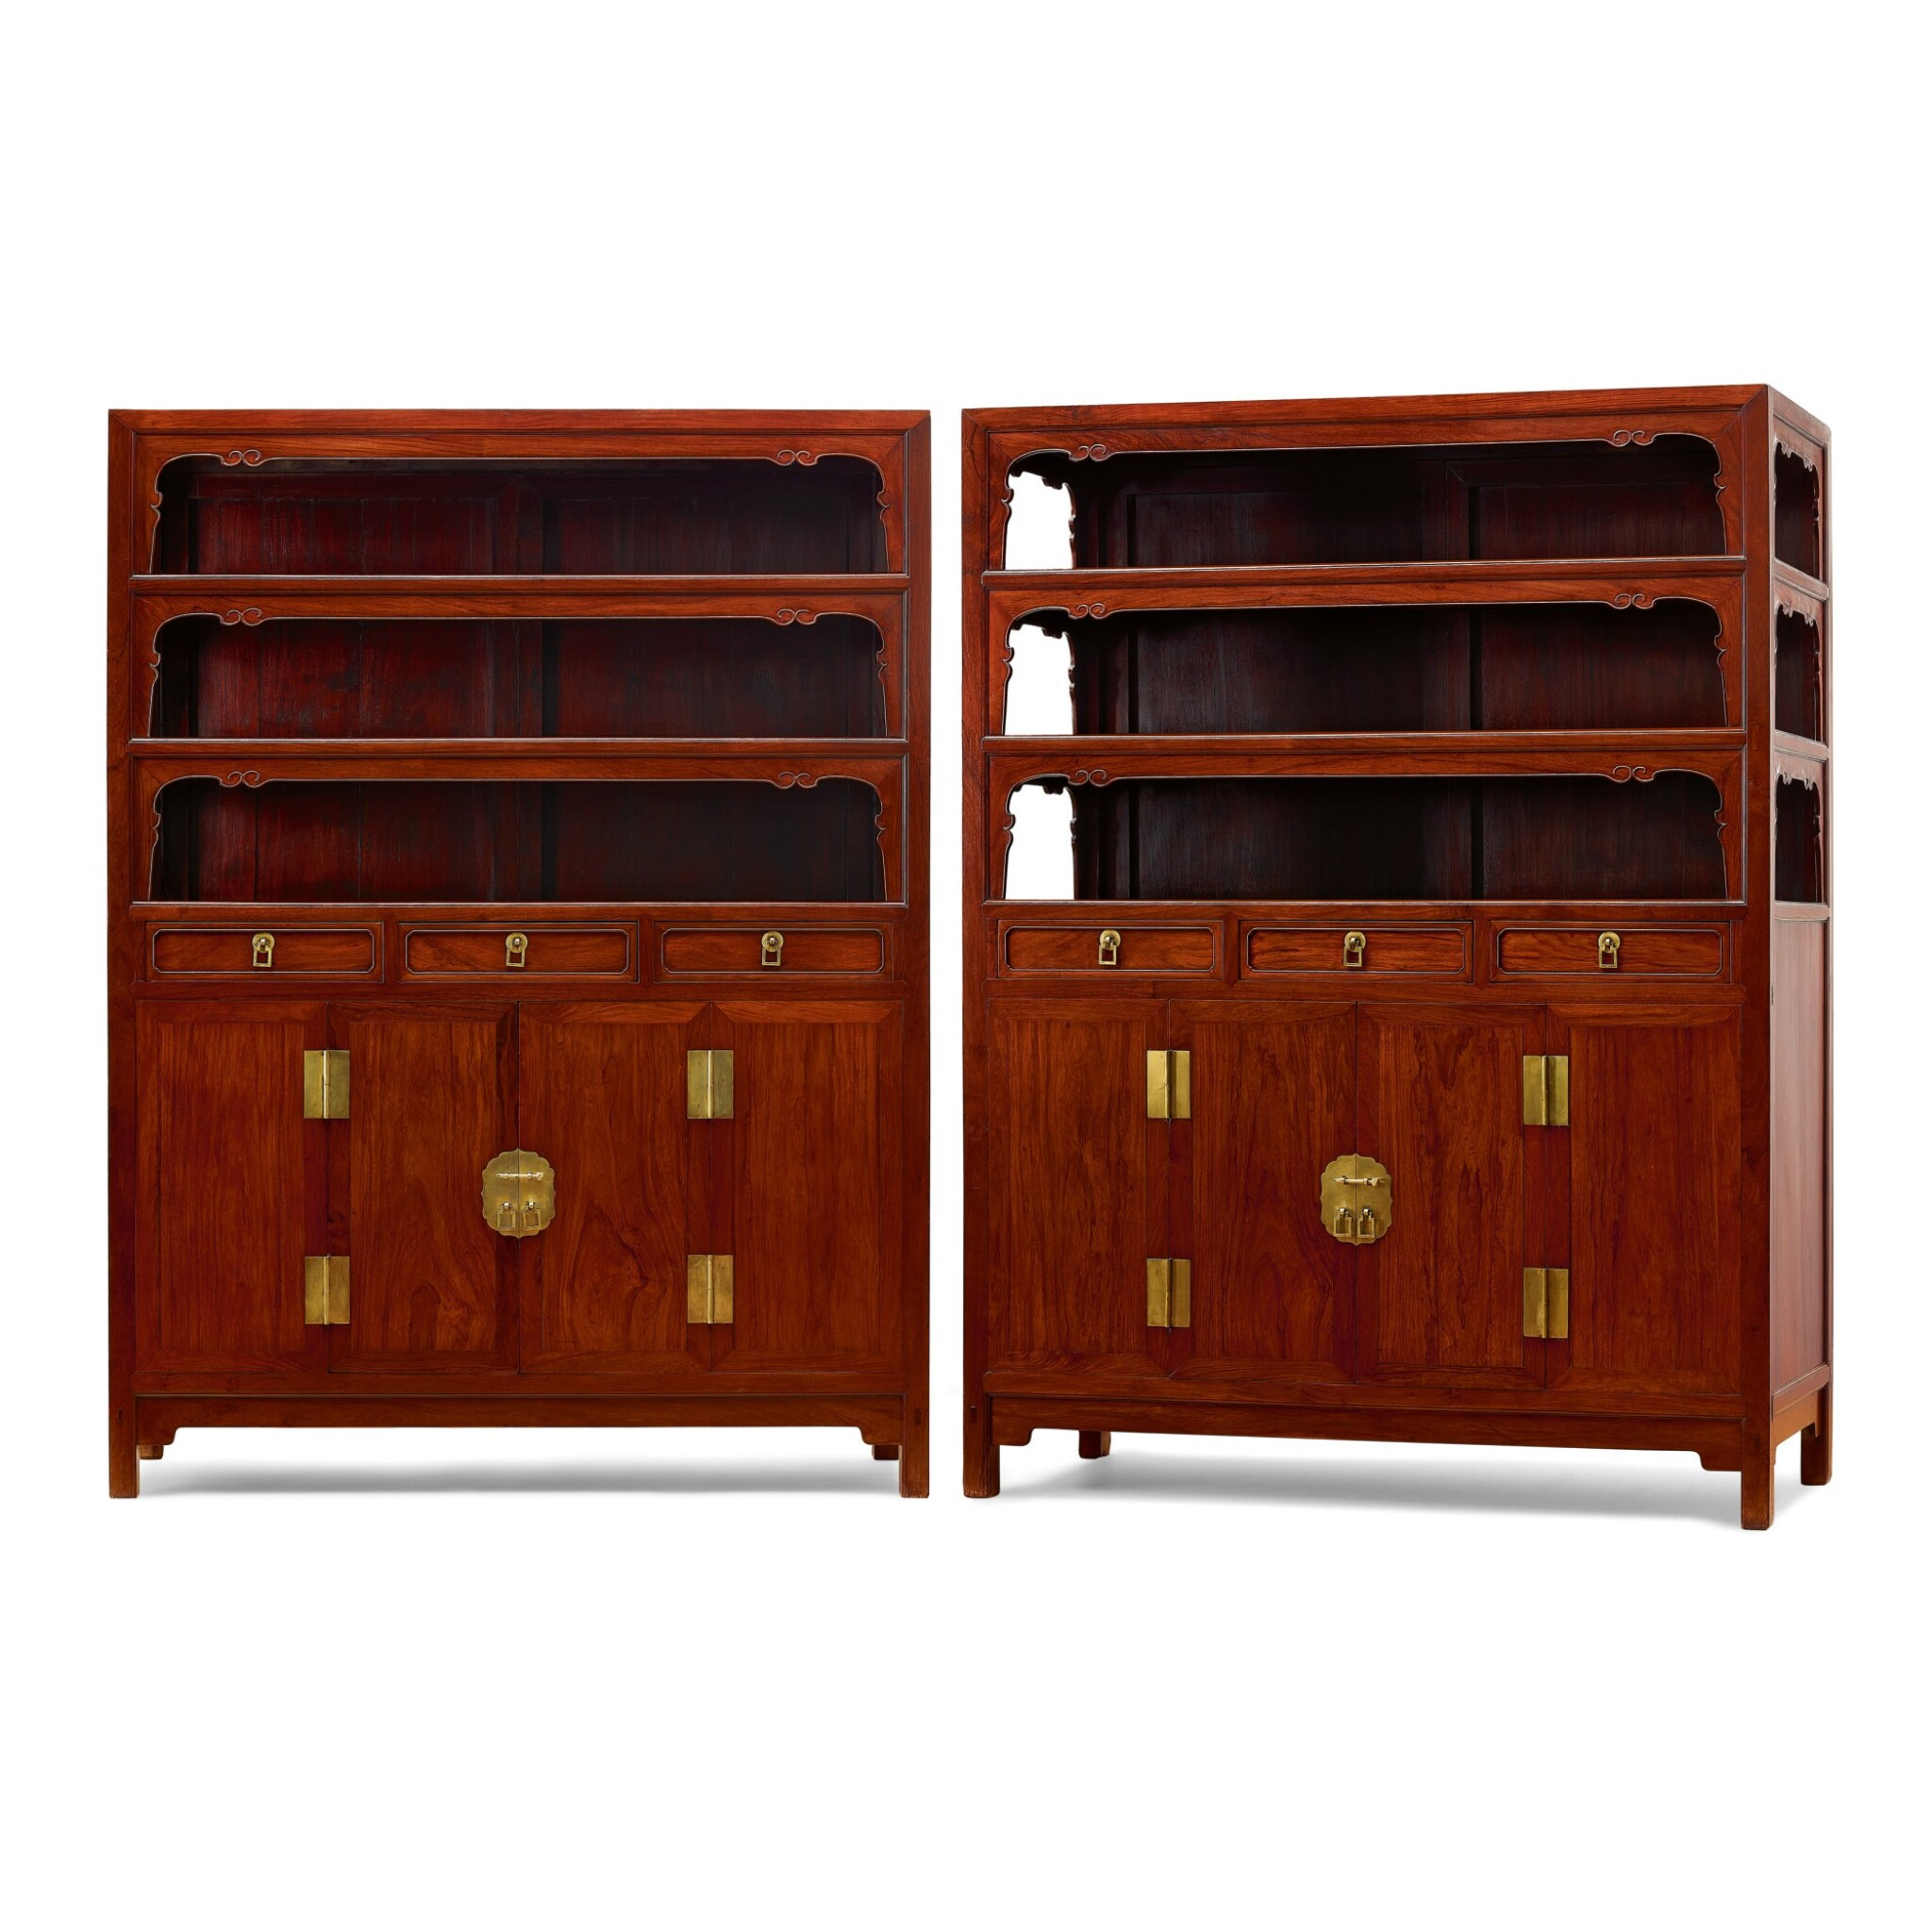 View full screen - View 1 of Lot 75. A RARE AND LARGE PAIR OF HUANGHUALI SQUARE-CORNER DISPLAY CABINETS, WANLIGUI 17TH CENTURY | 十七世紀 黃花梨萬曆櫃成對.